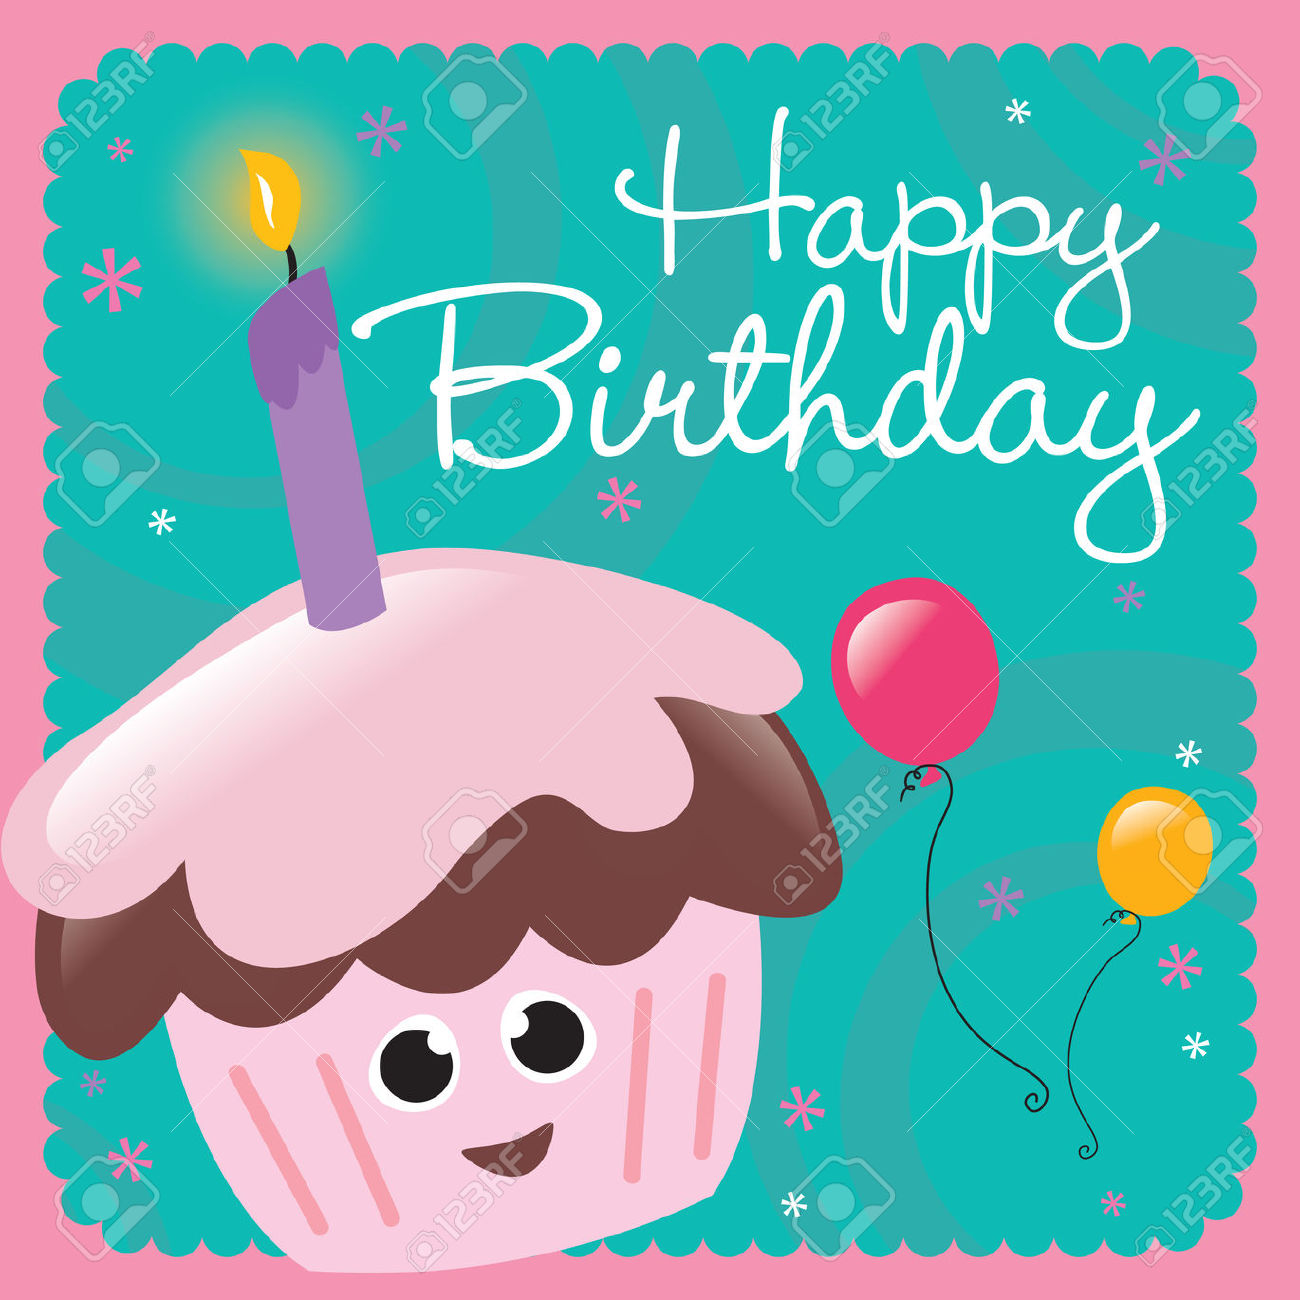 clipart birthday greetings ; happy-birthday-cards-clipart-2